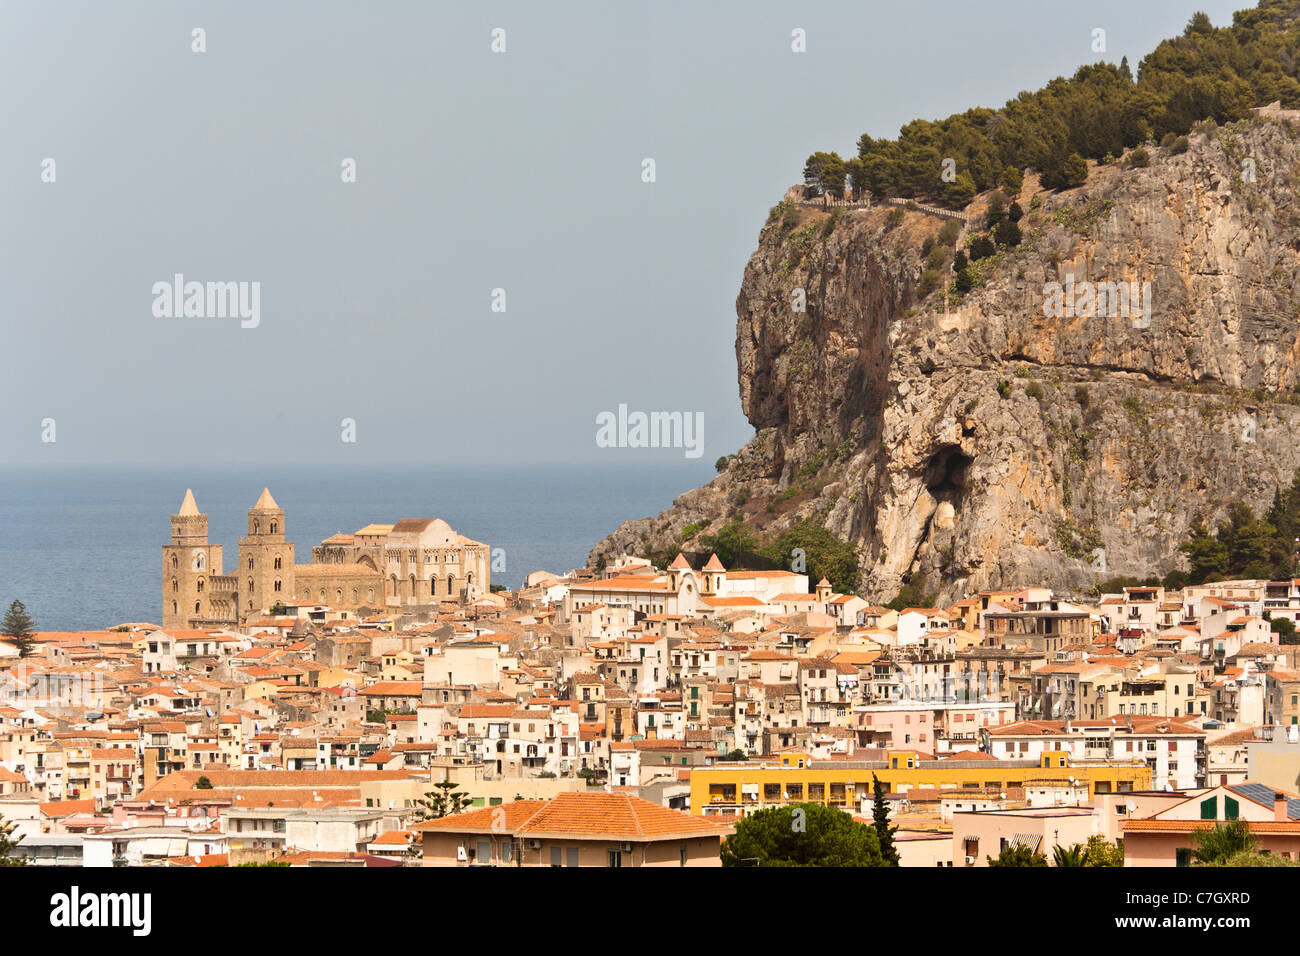 View of Cefalu, Sicily, Italy Stock Photo